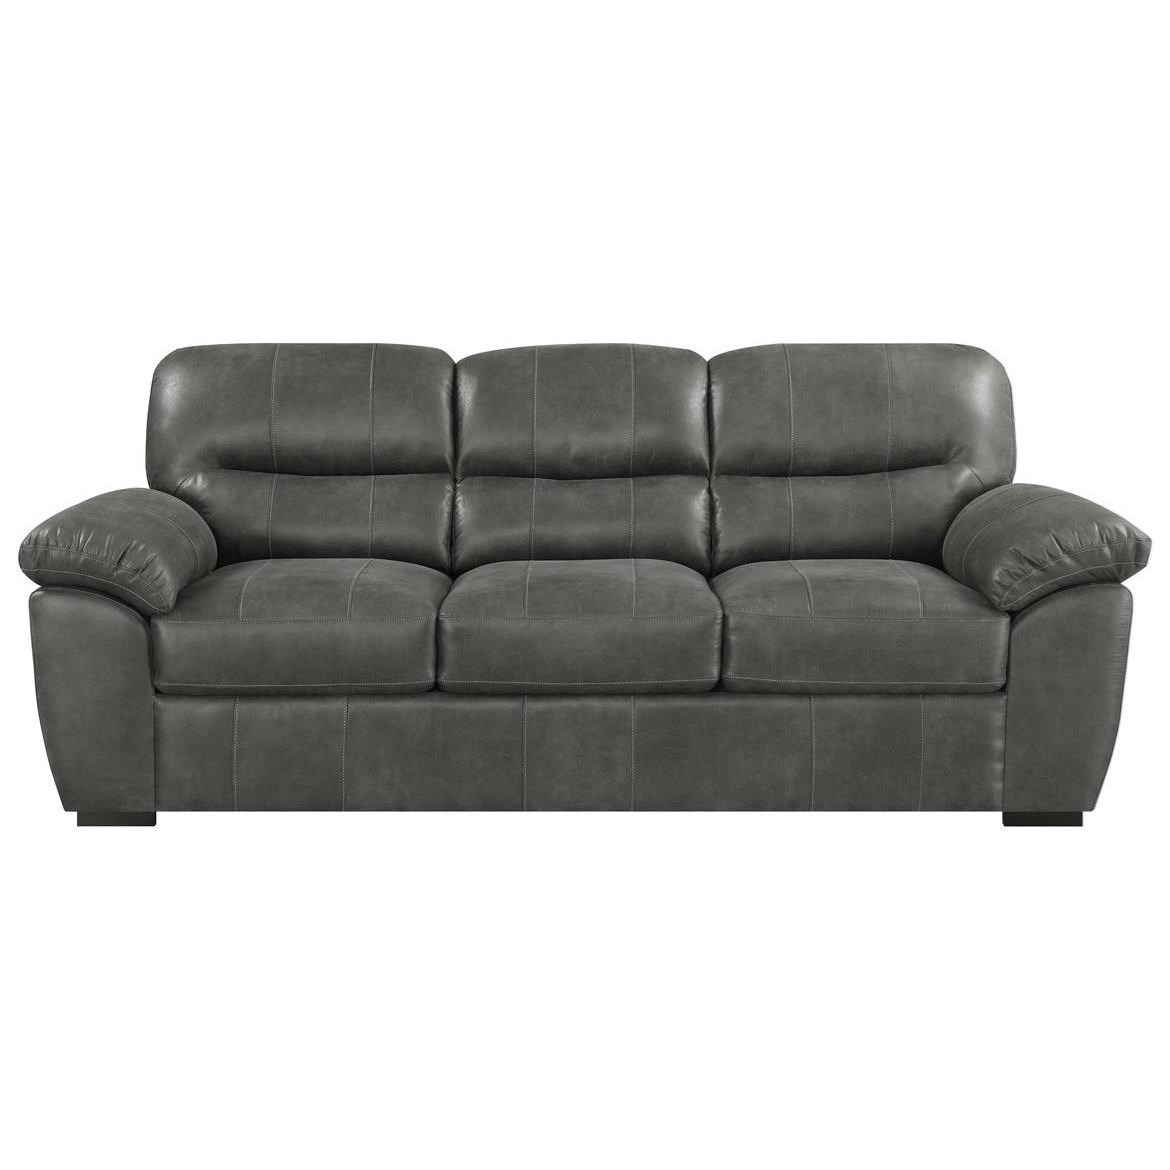 Nelson Sofa by Emerald at Northeast Factory Direct